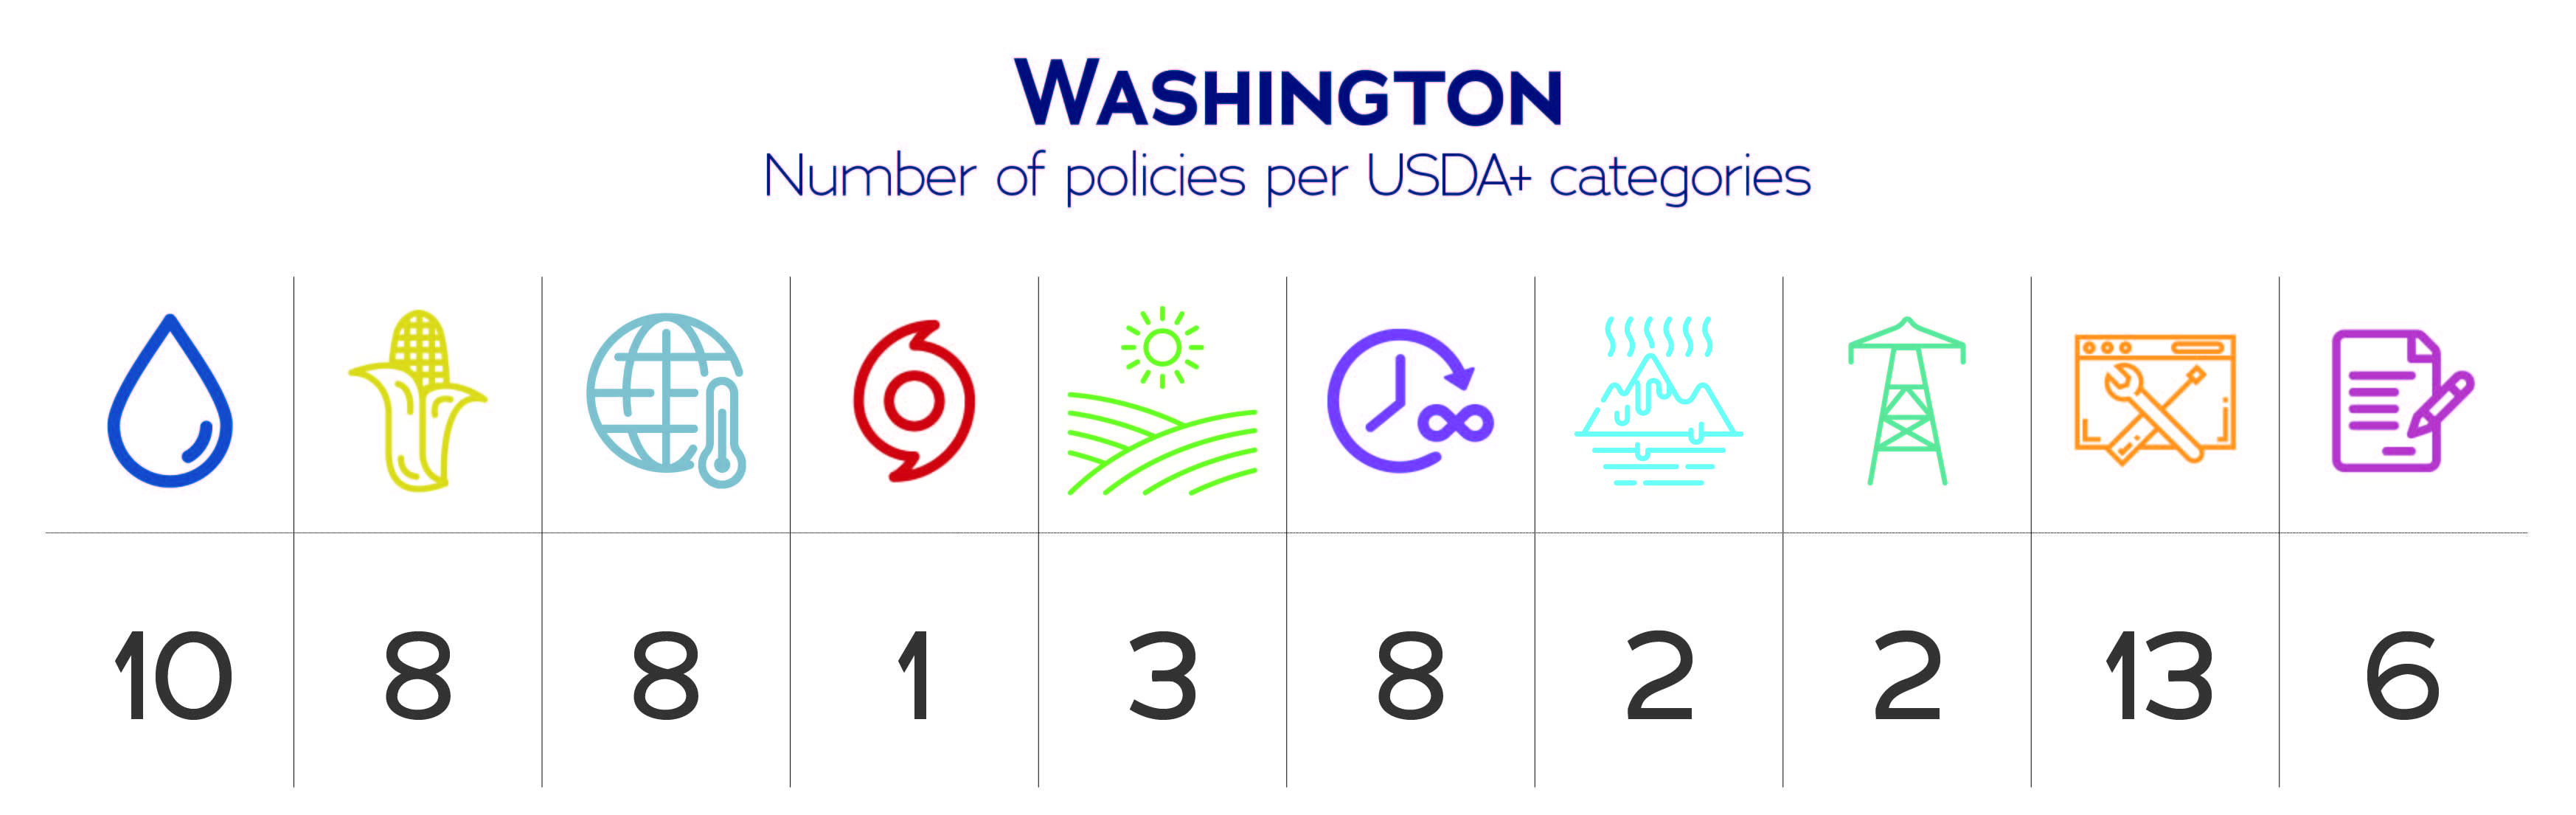 Washington USDA+ category data